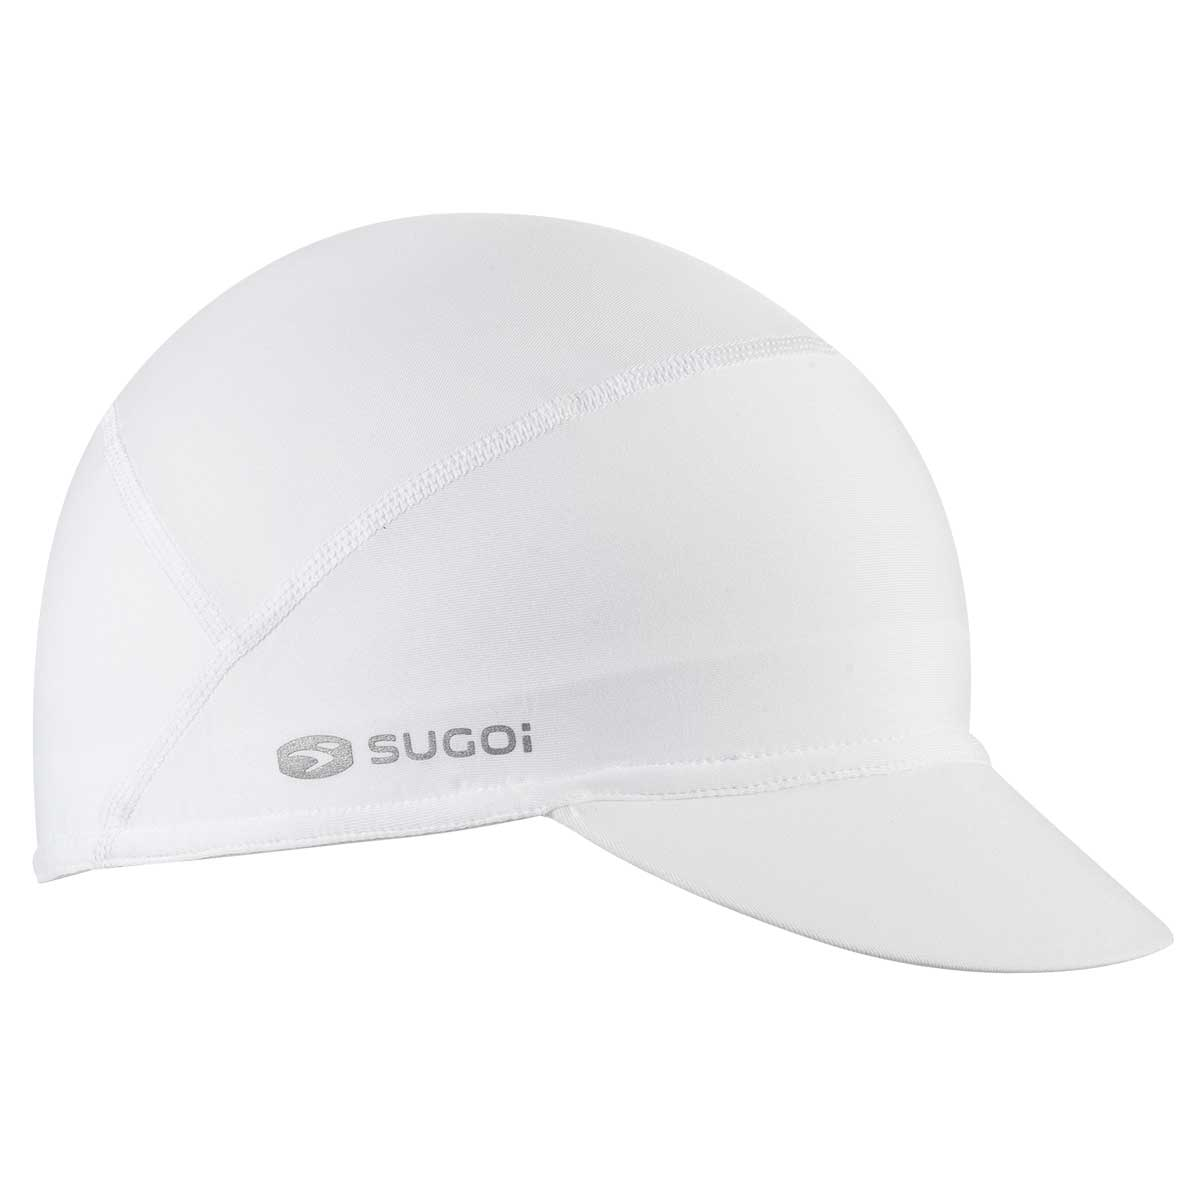 Sugoi Cooler Cap in White